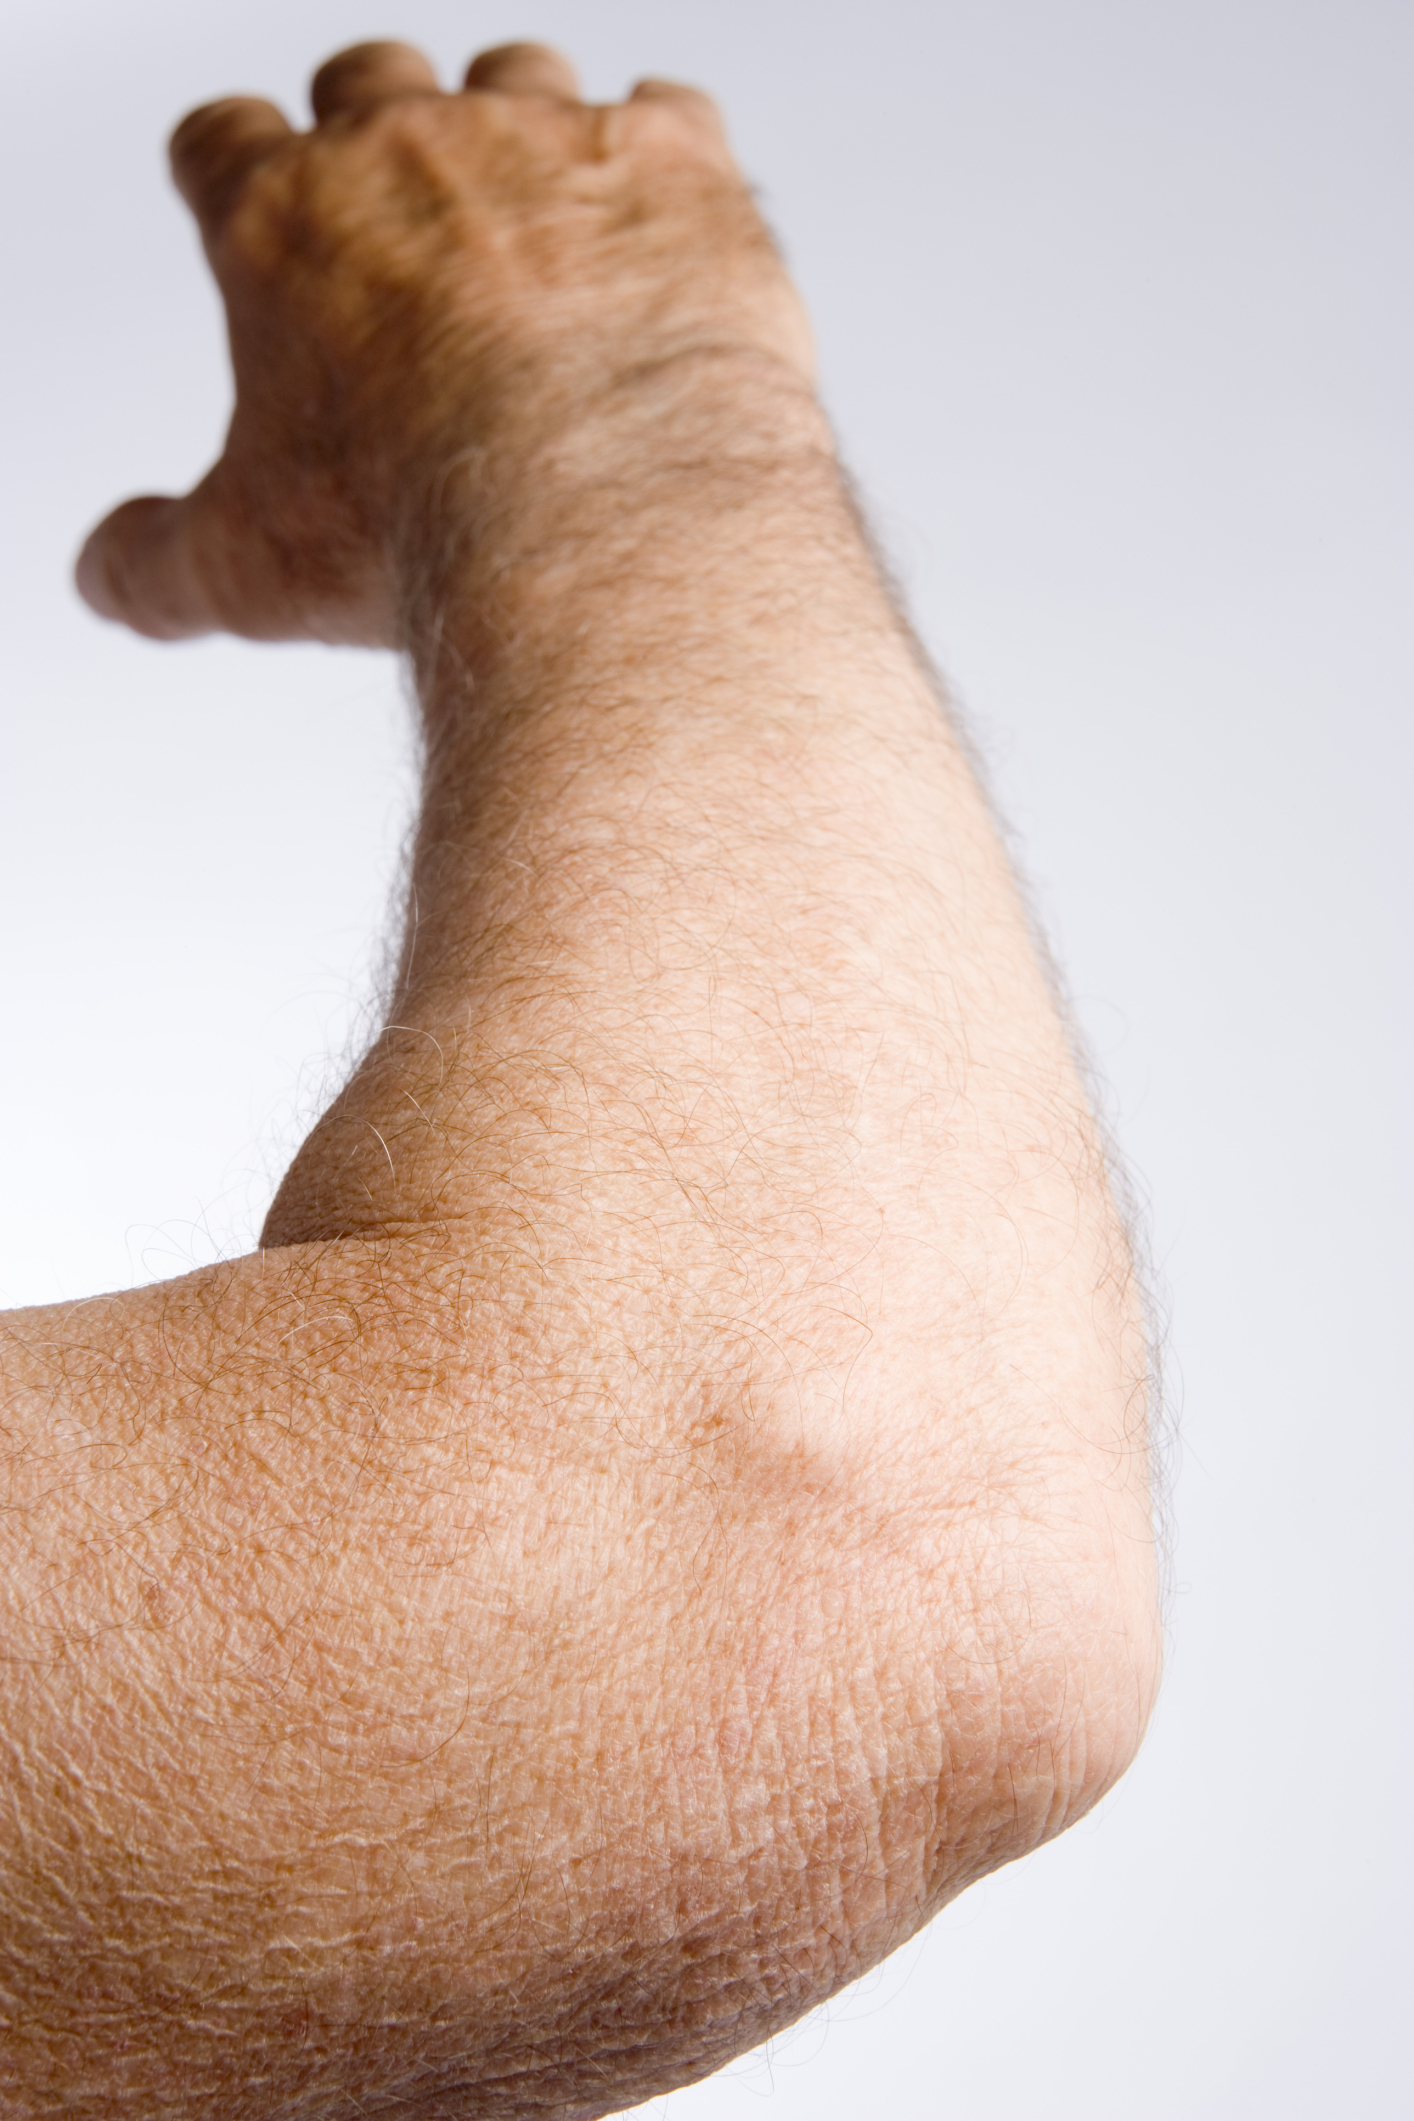 Elbow Skin Pain Livestrong